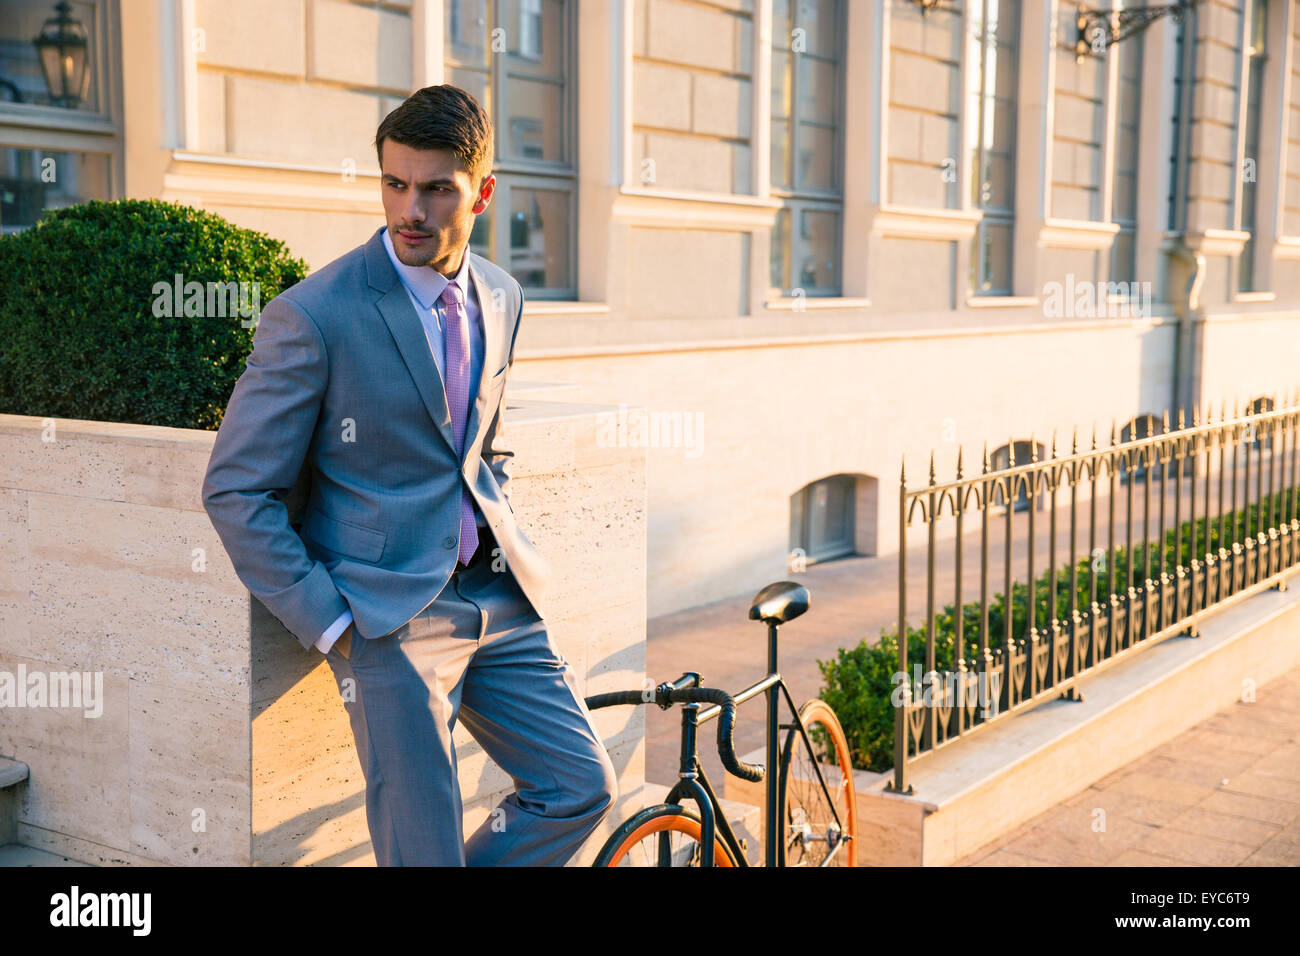 Handsome businessman standing outdoors in town - Stock Image